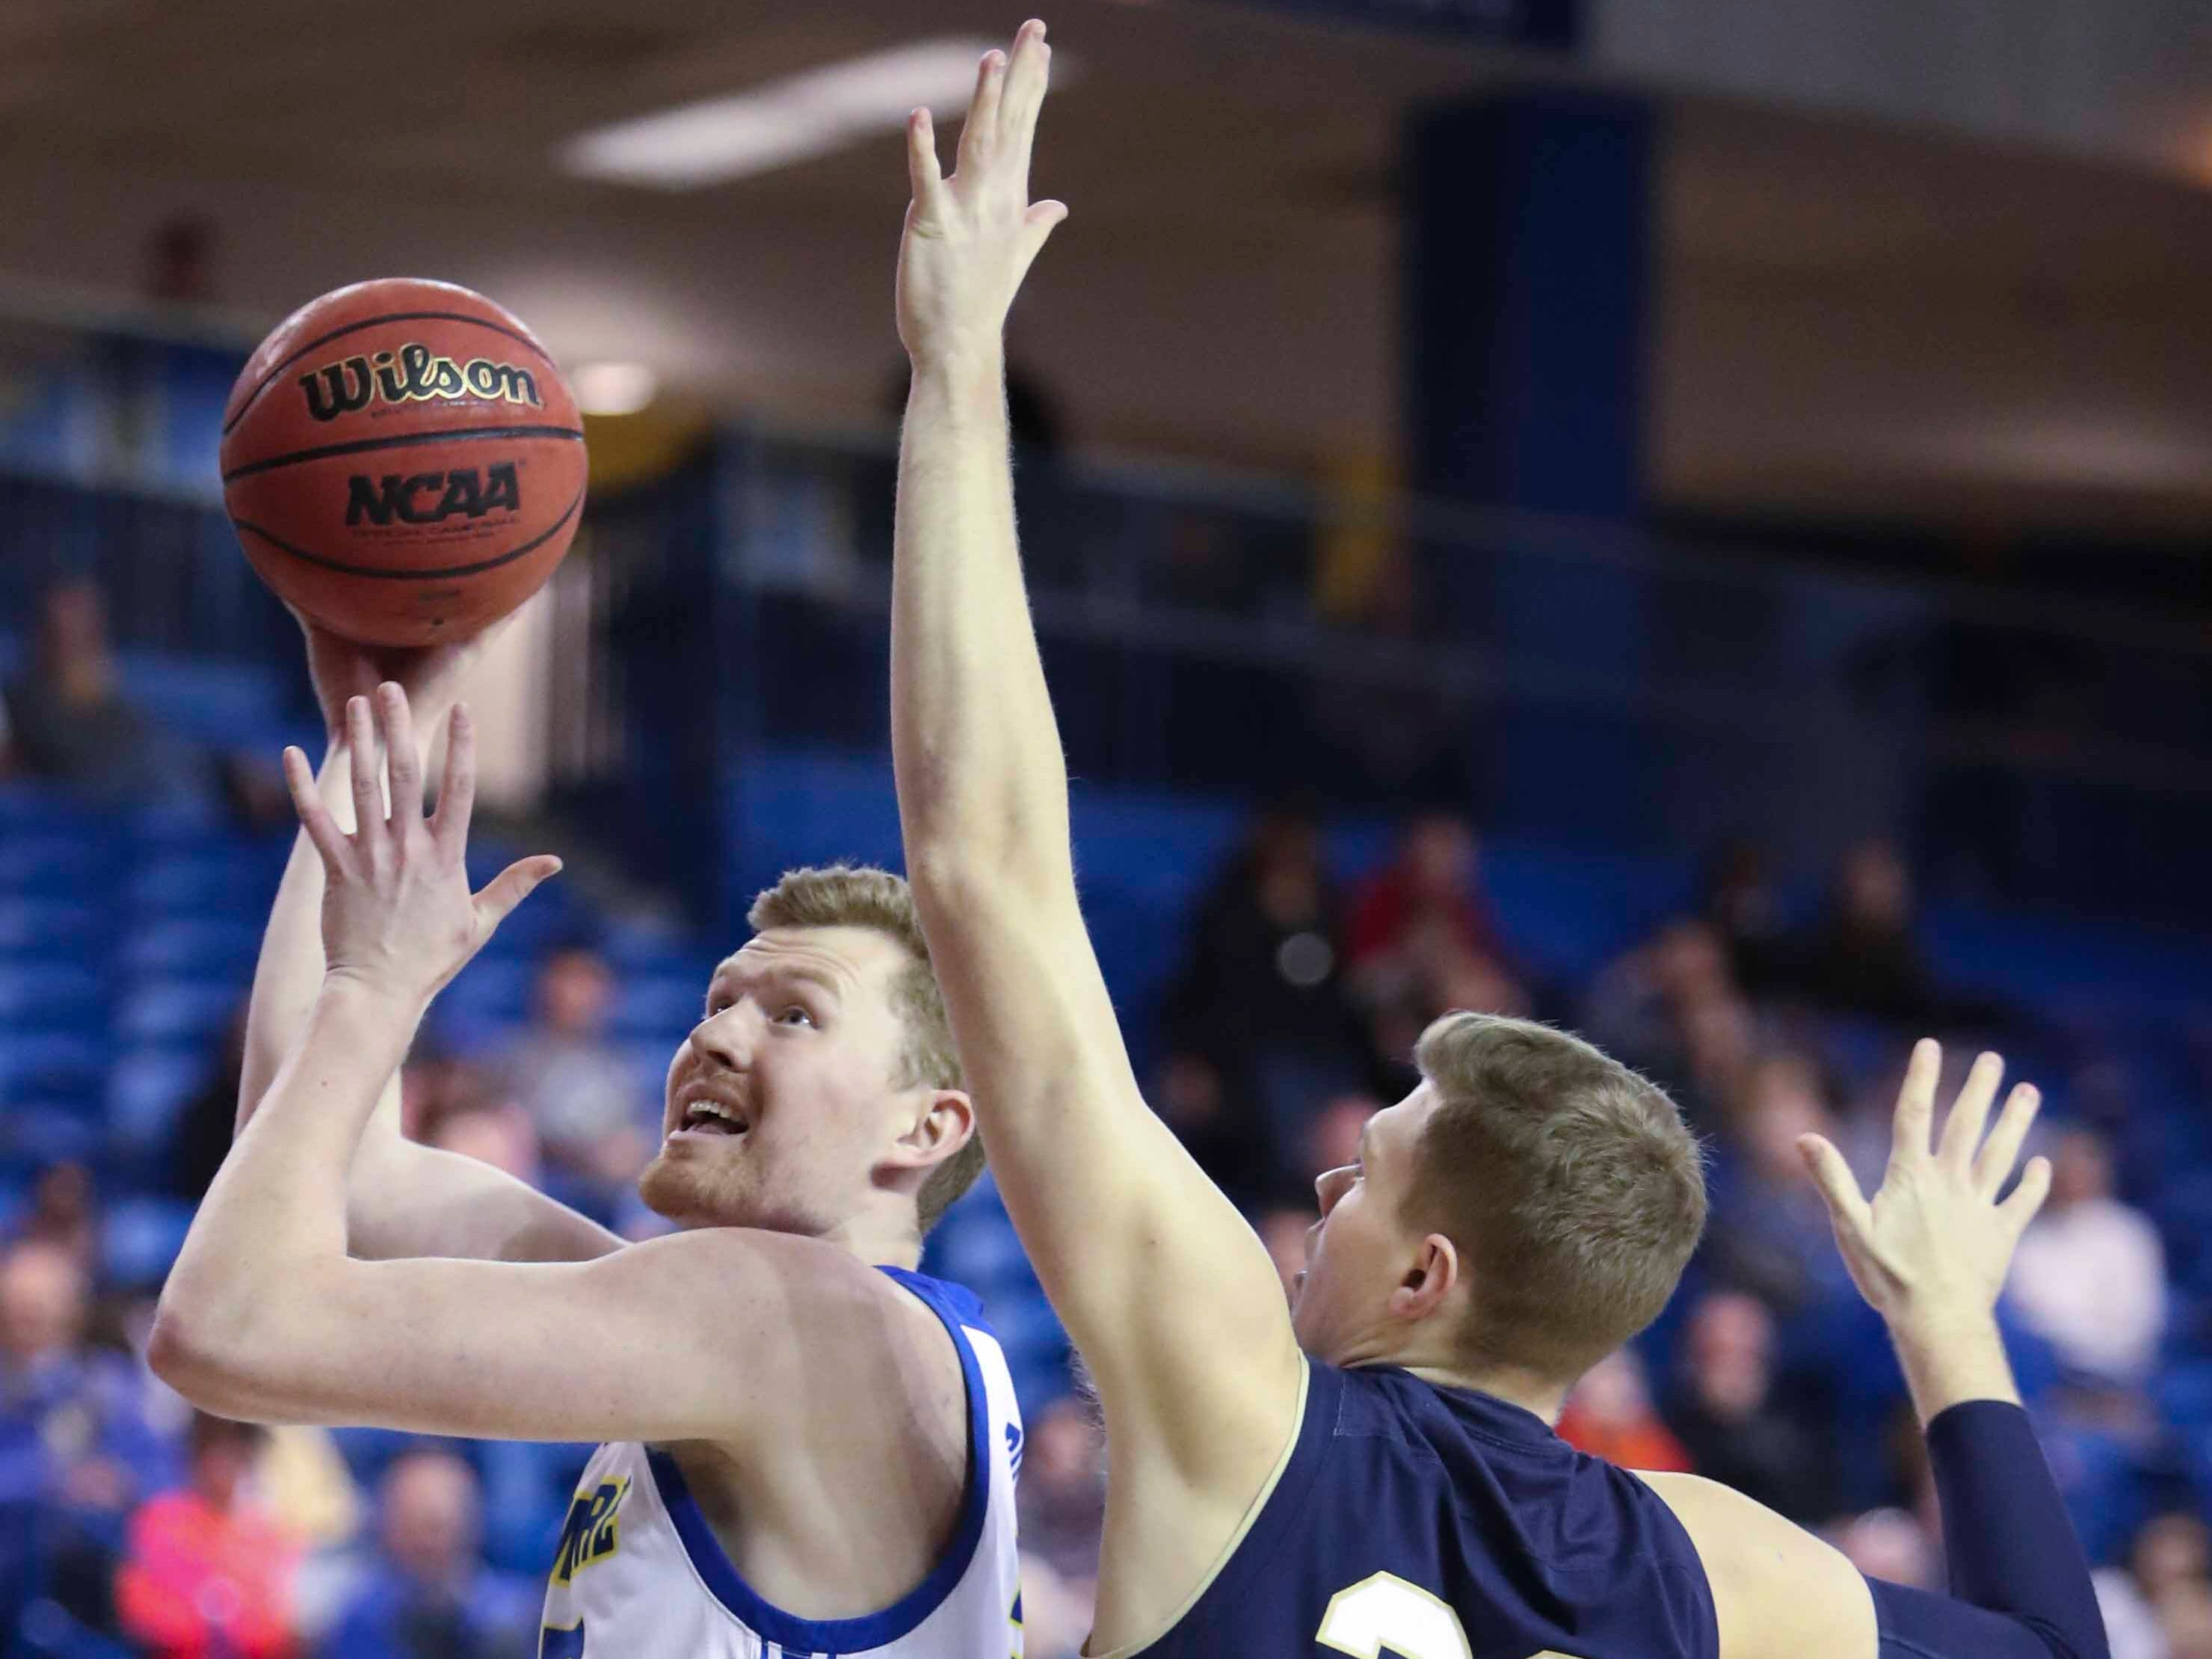 Delaware's Collin Goss looks to the basket past Navy's Luke Loehr in the first half at the Bob Carpenter Center Wednesday.